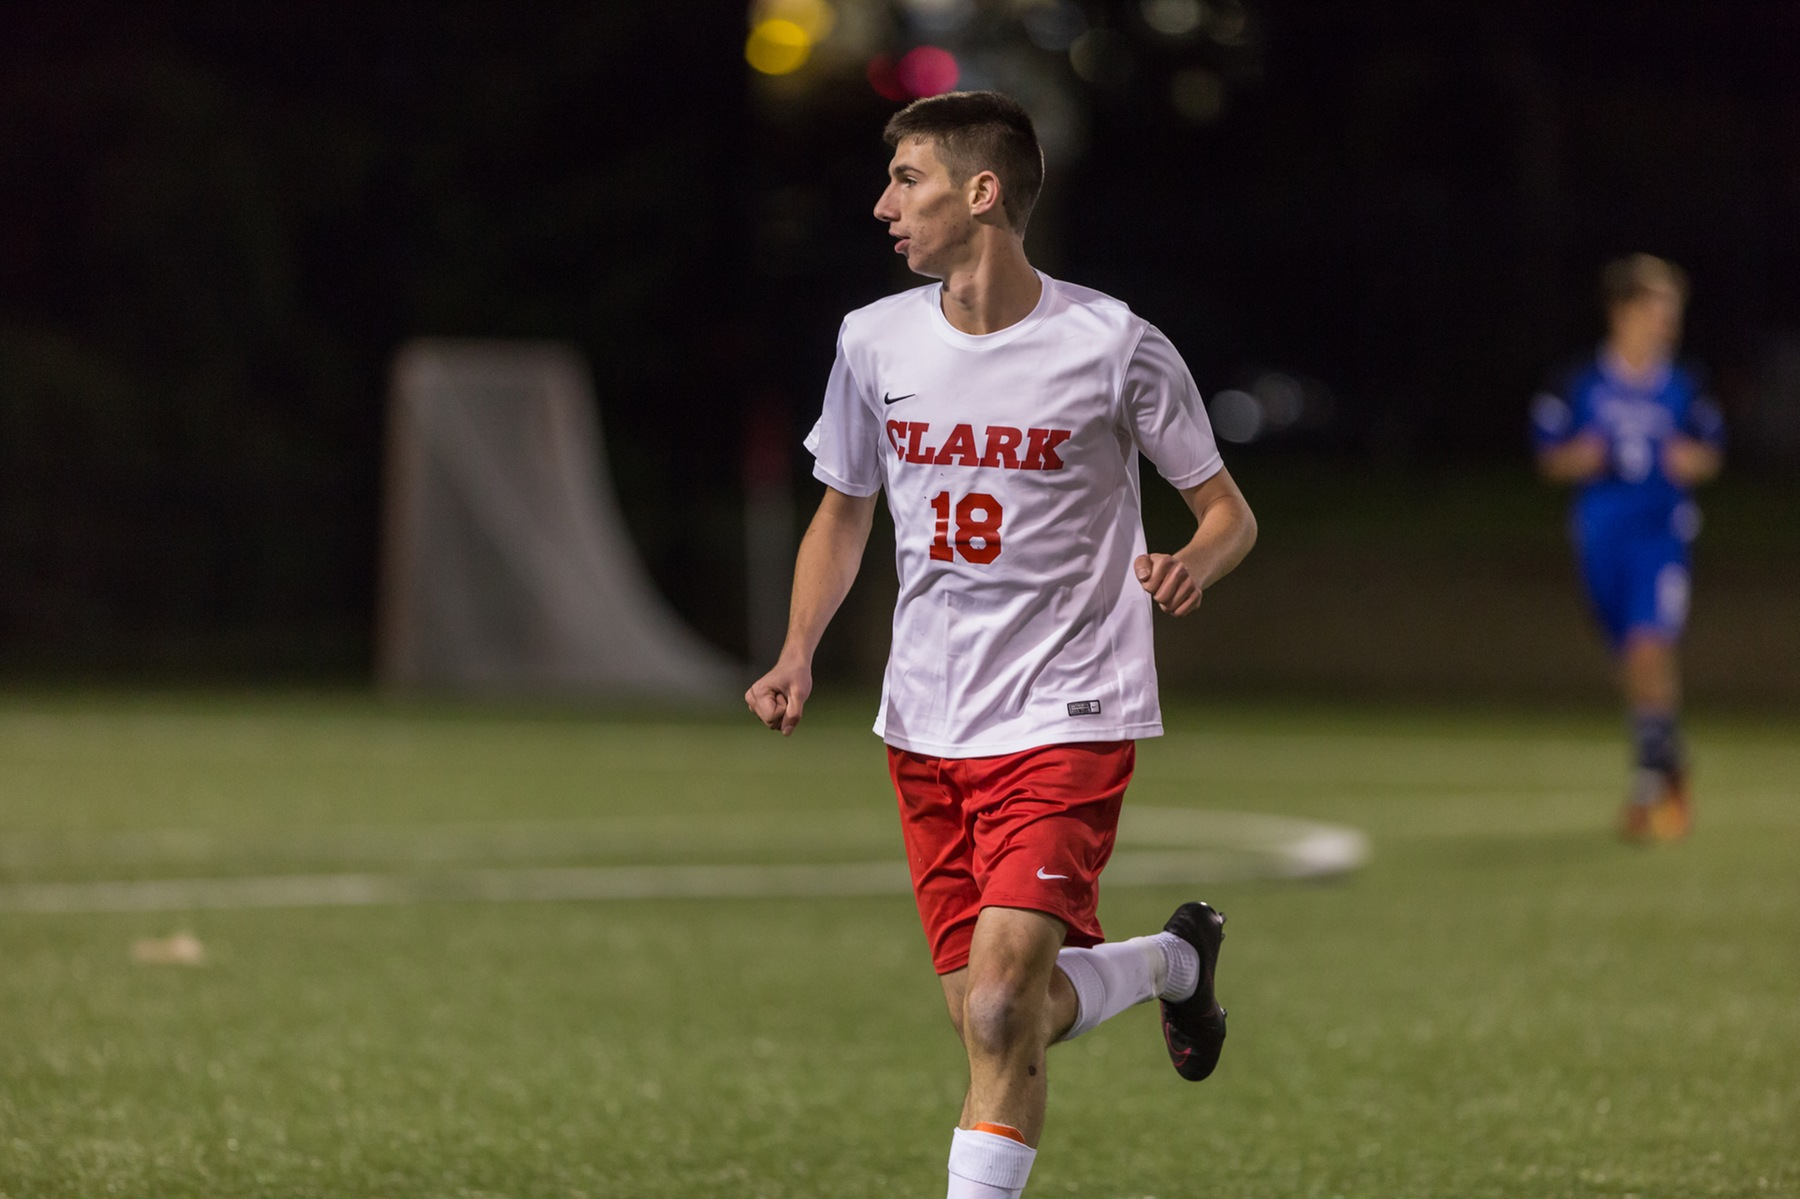 Sean Munroe Scores Two Goals In Men's Soccer Loss